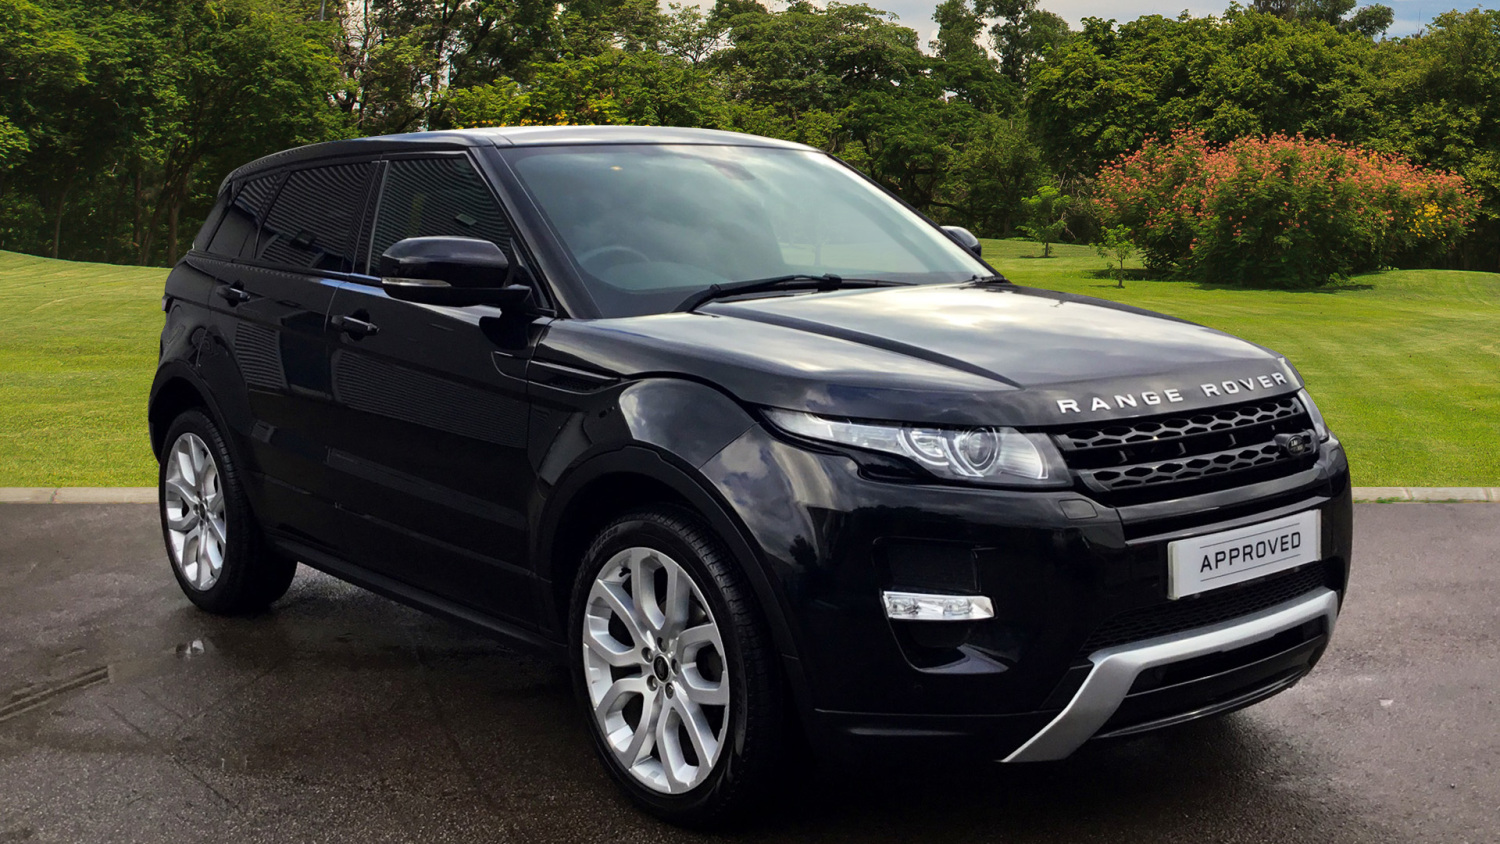 used land rover range rover evoque 2 2 sd4 dynamic 5dr auto diesel hatchback for sale bristol. Black Bedroom Furniture Sets. Home Design Ideas